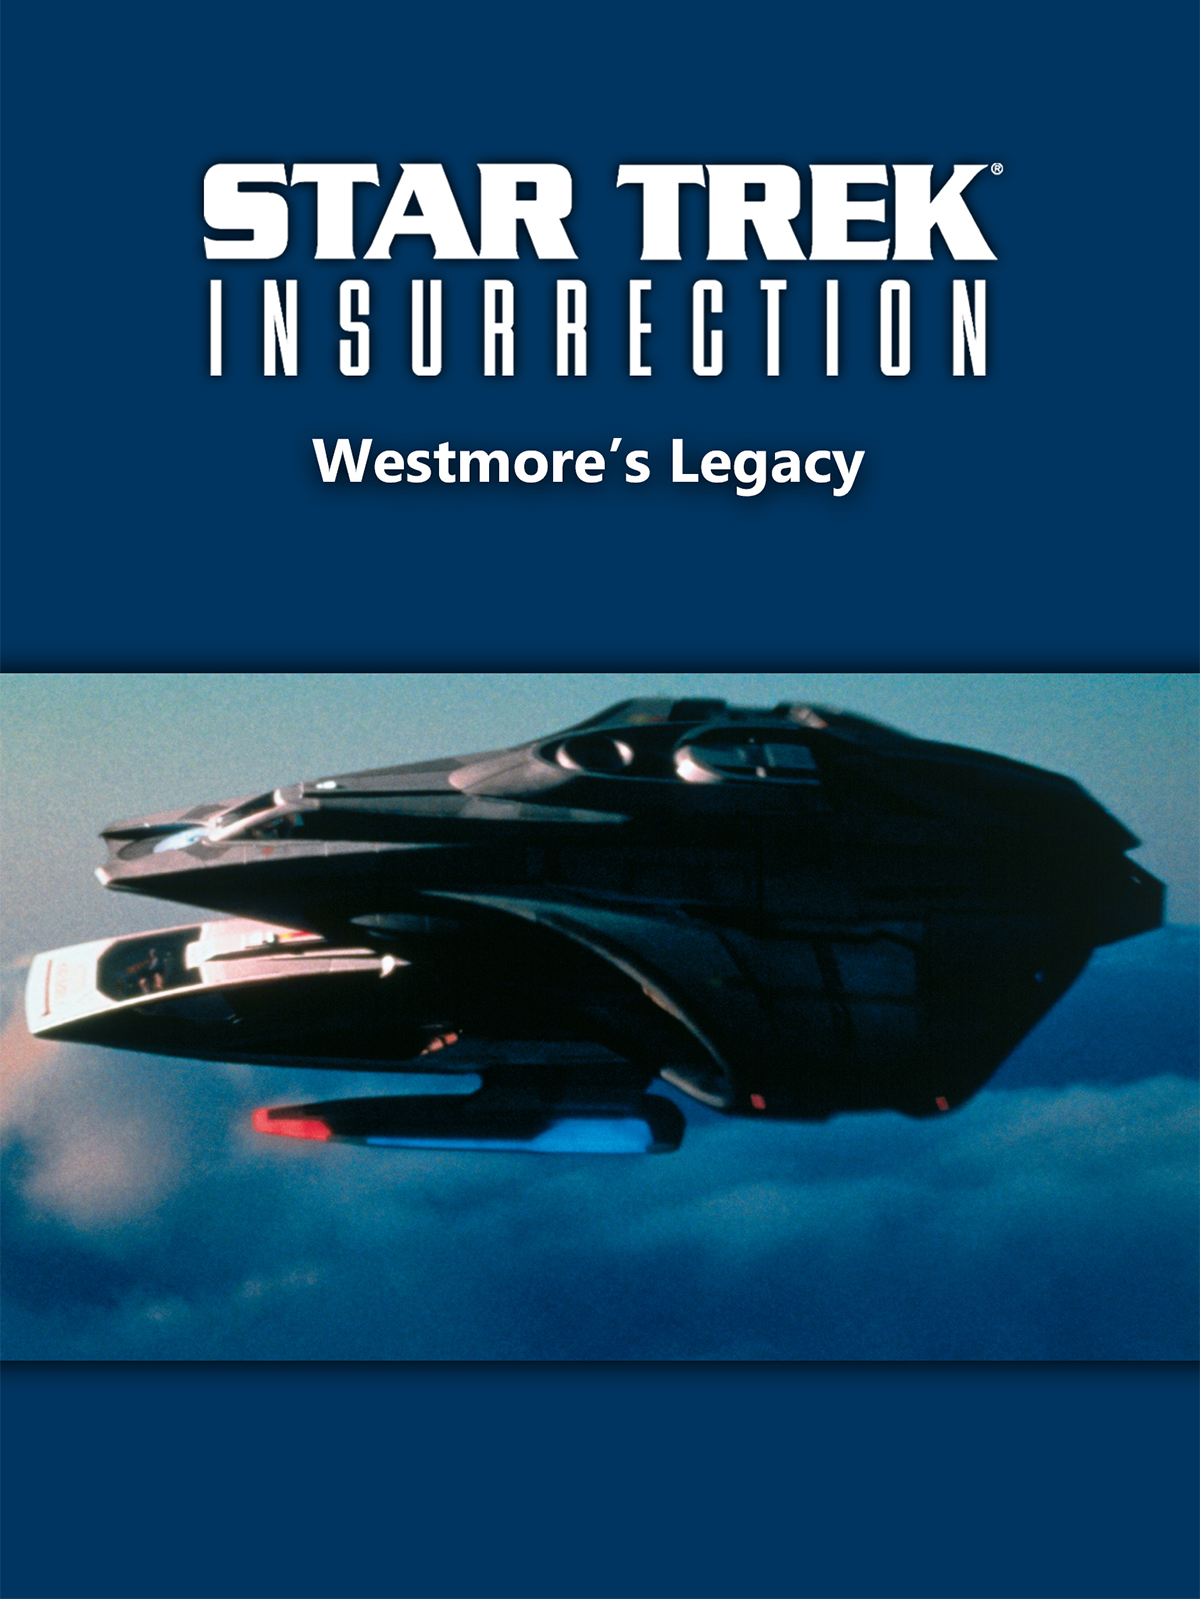 Westmore's Legacy HD stream